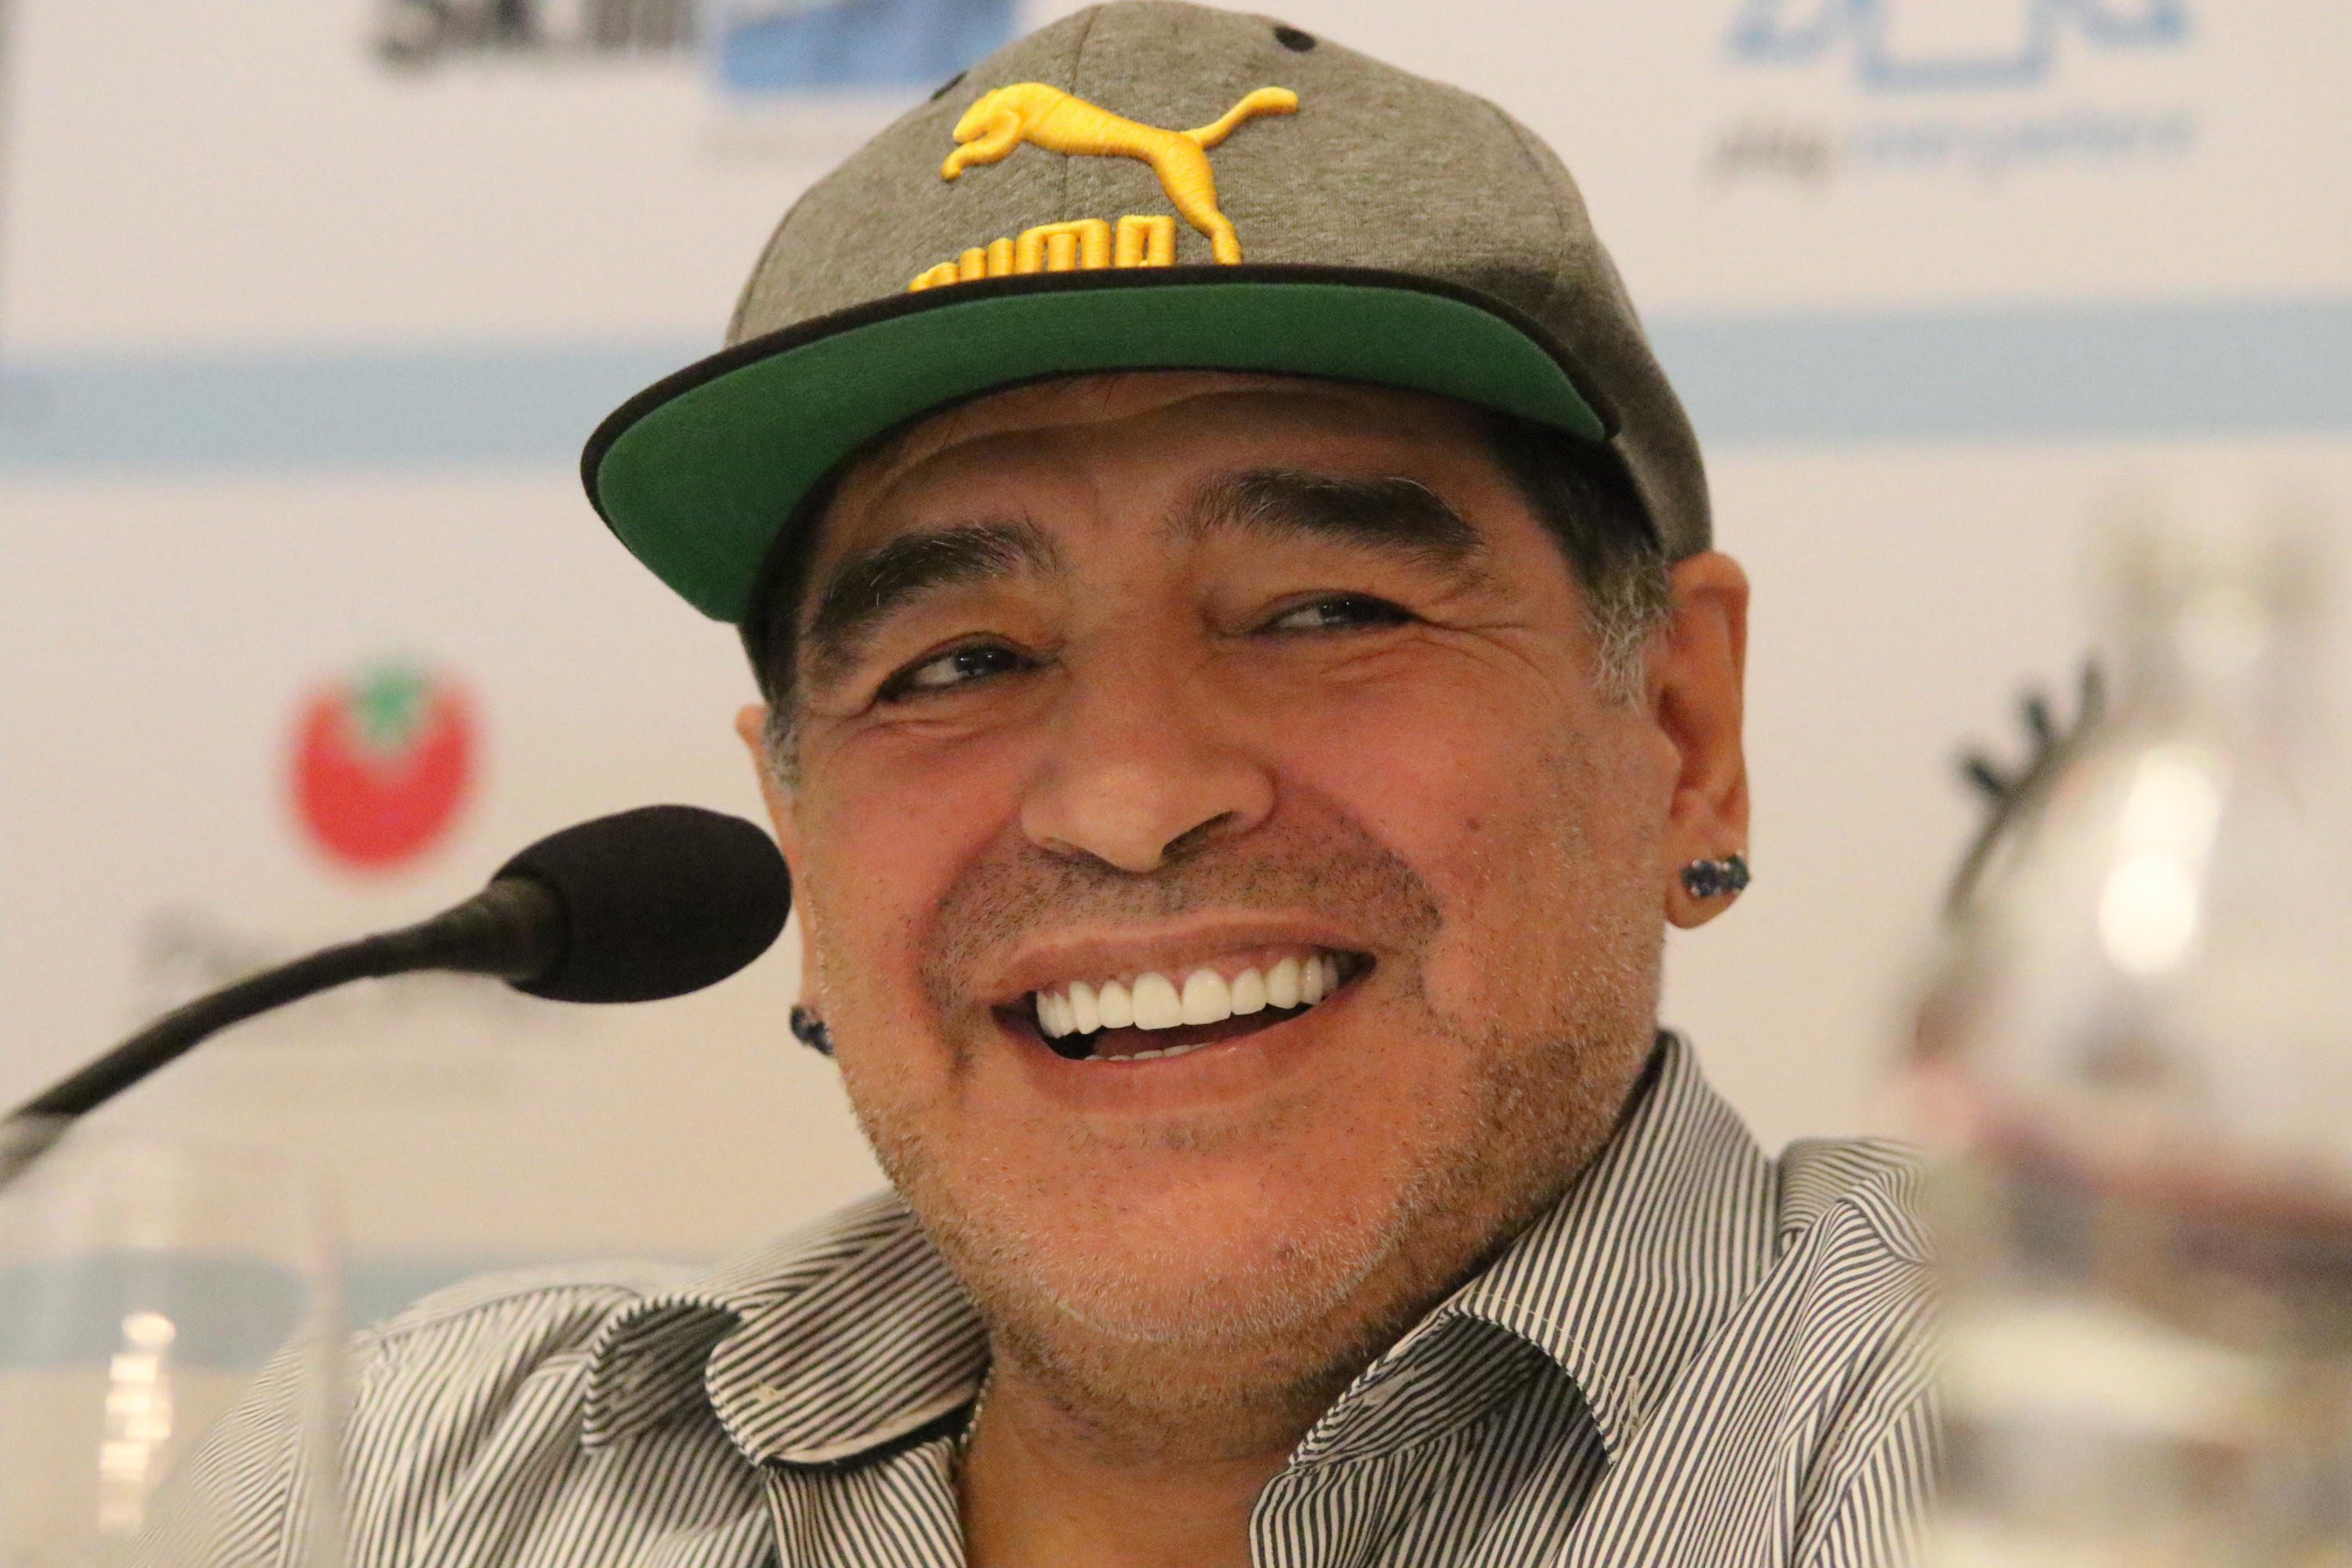 Diego Maradona is granted honourary citizenship of the city of Naples, Italy